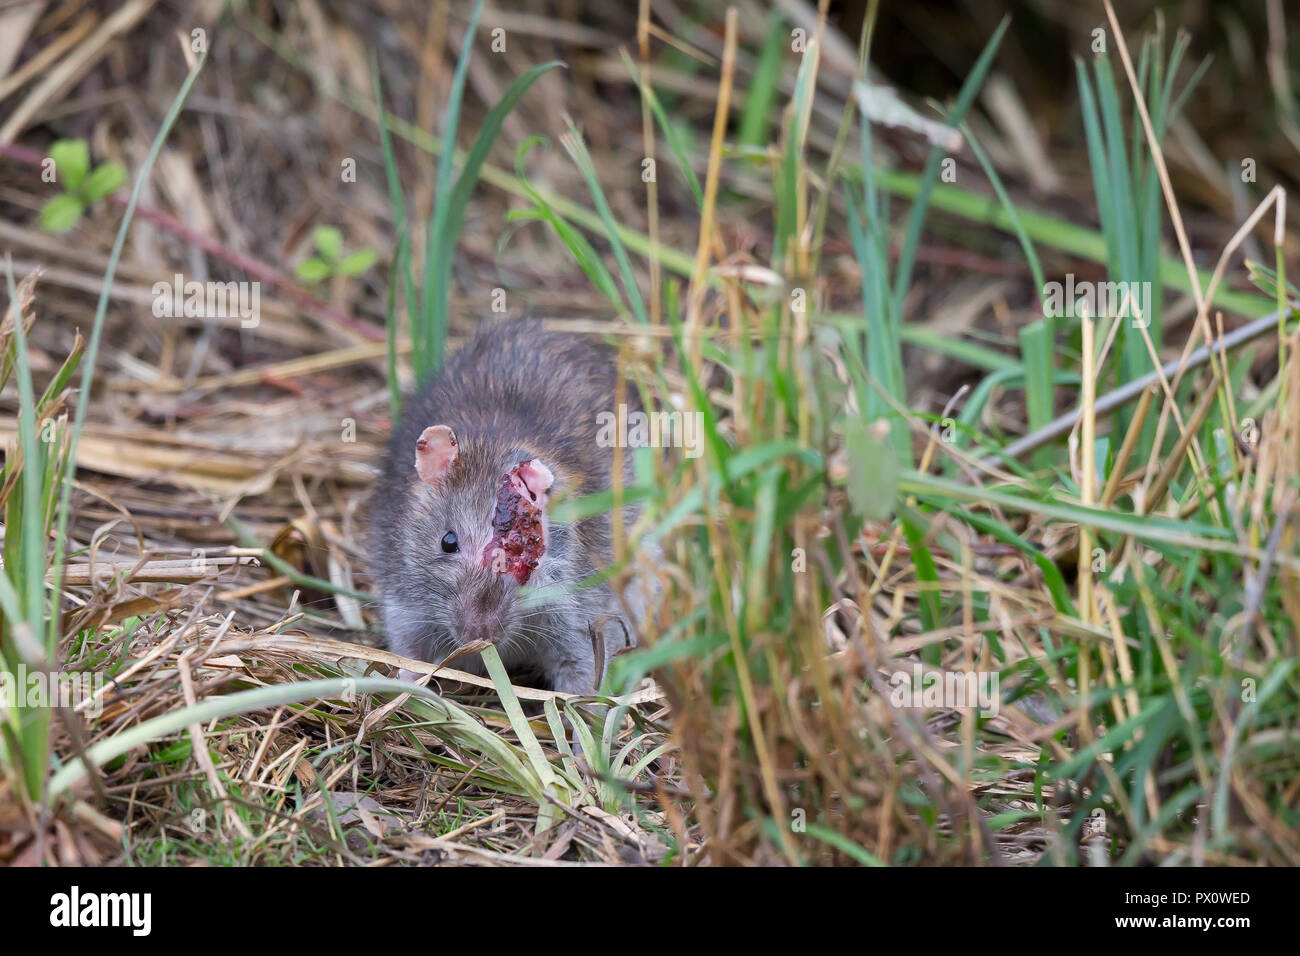 Detailed close up of horribly injured common brown rat (Rattus norvegicus) looking head-on with only one eye. Injury: dominance or territory squabble. - Stock Image